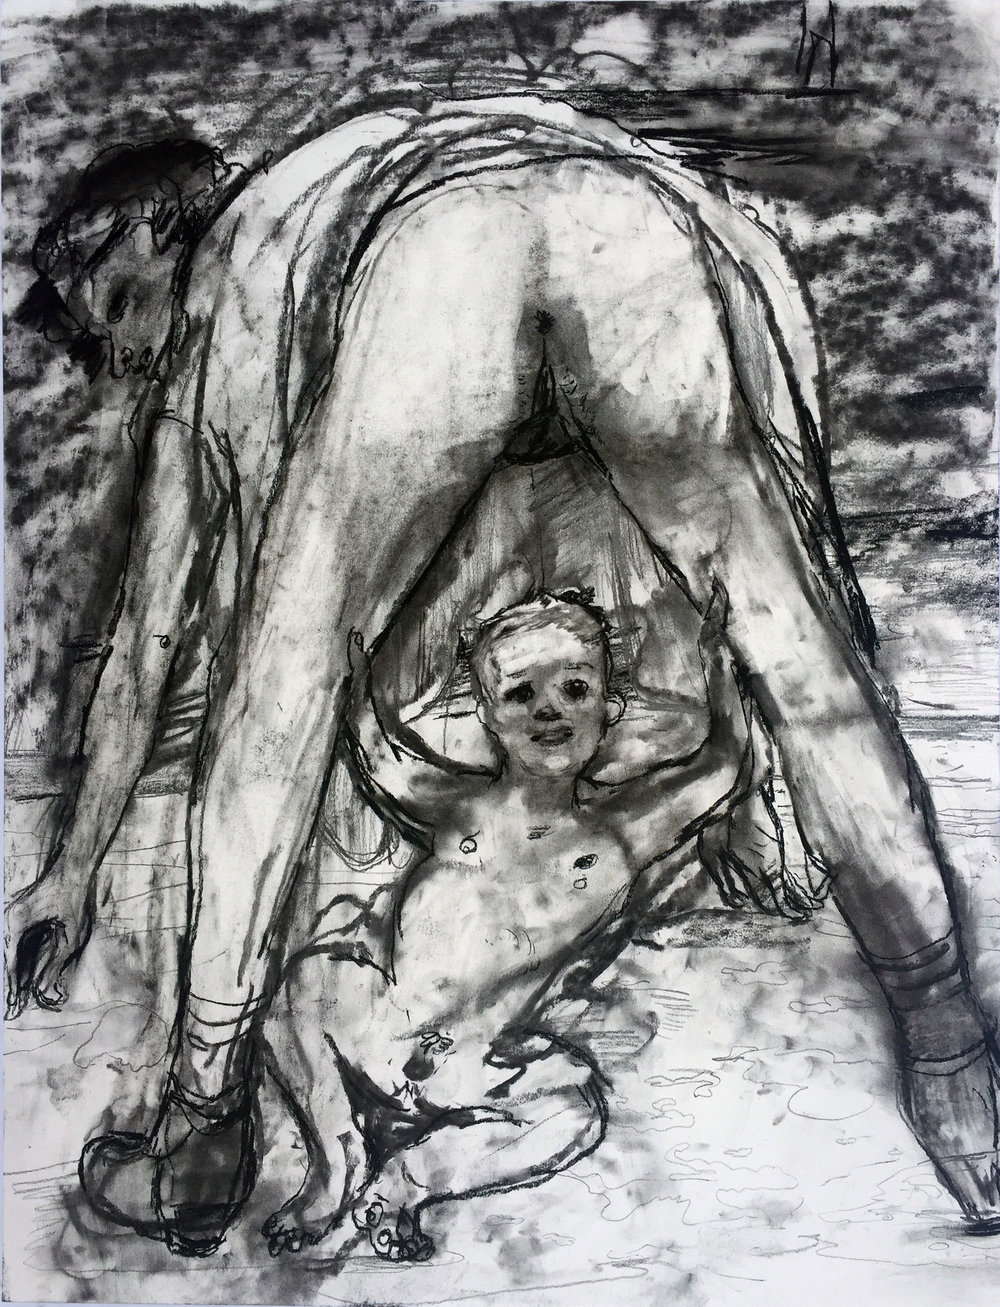 Birthday 18 by 24 inches charcoal on paper 2017.jpg